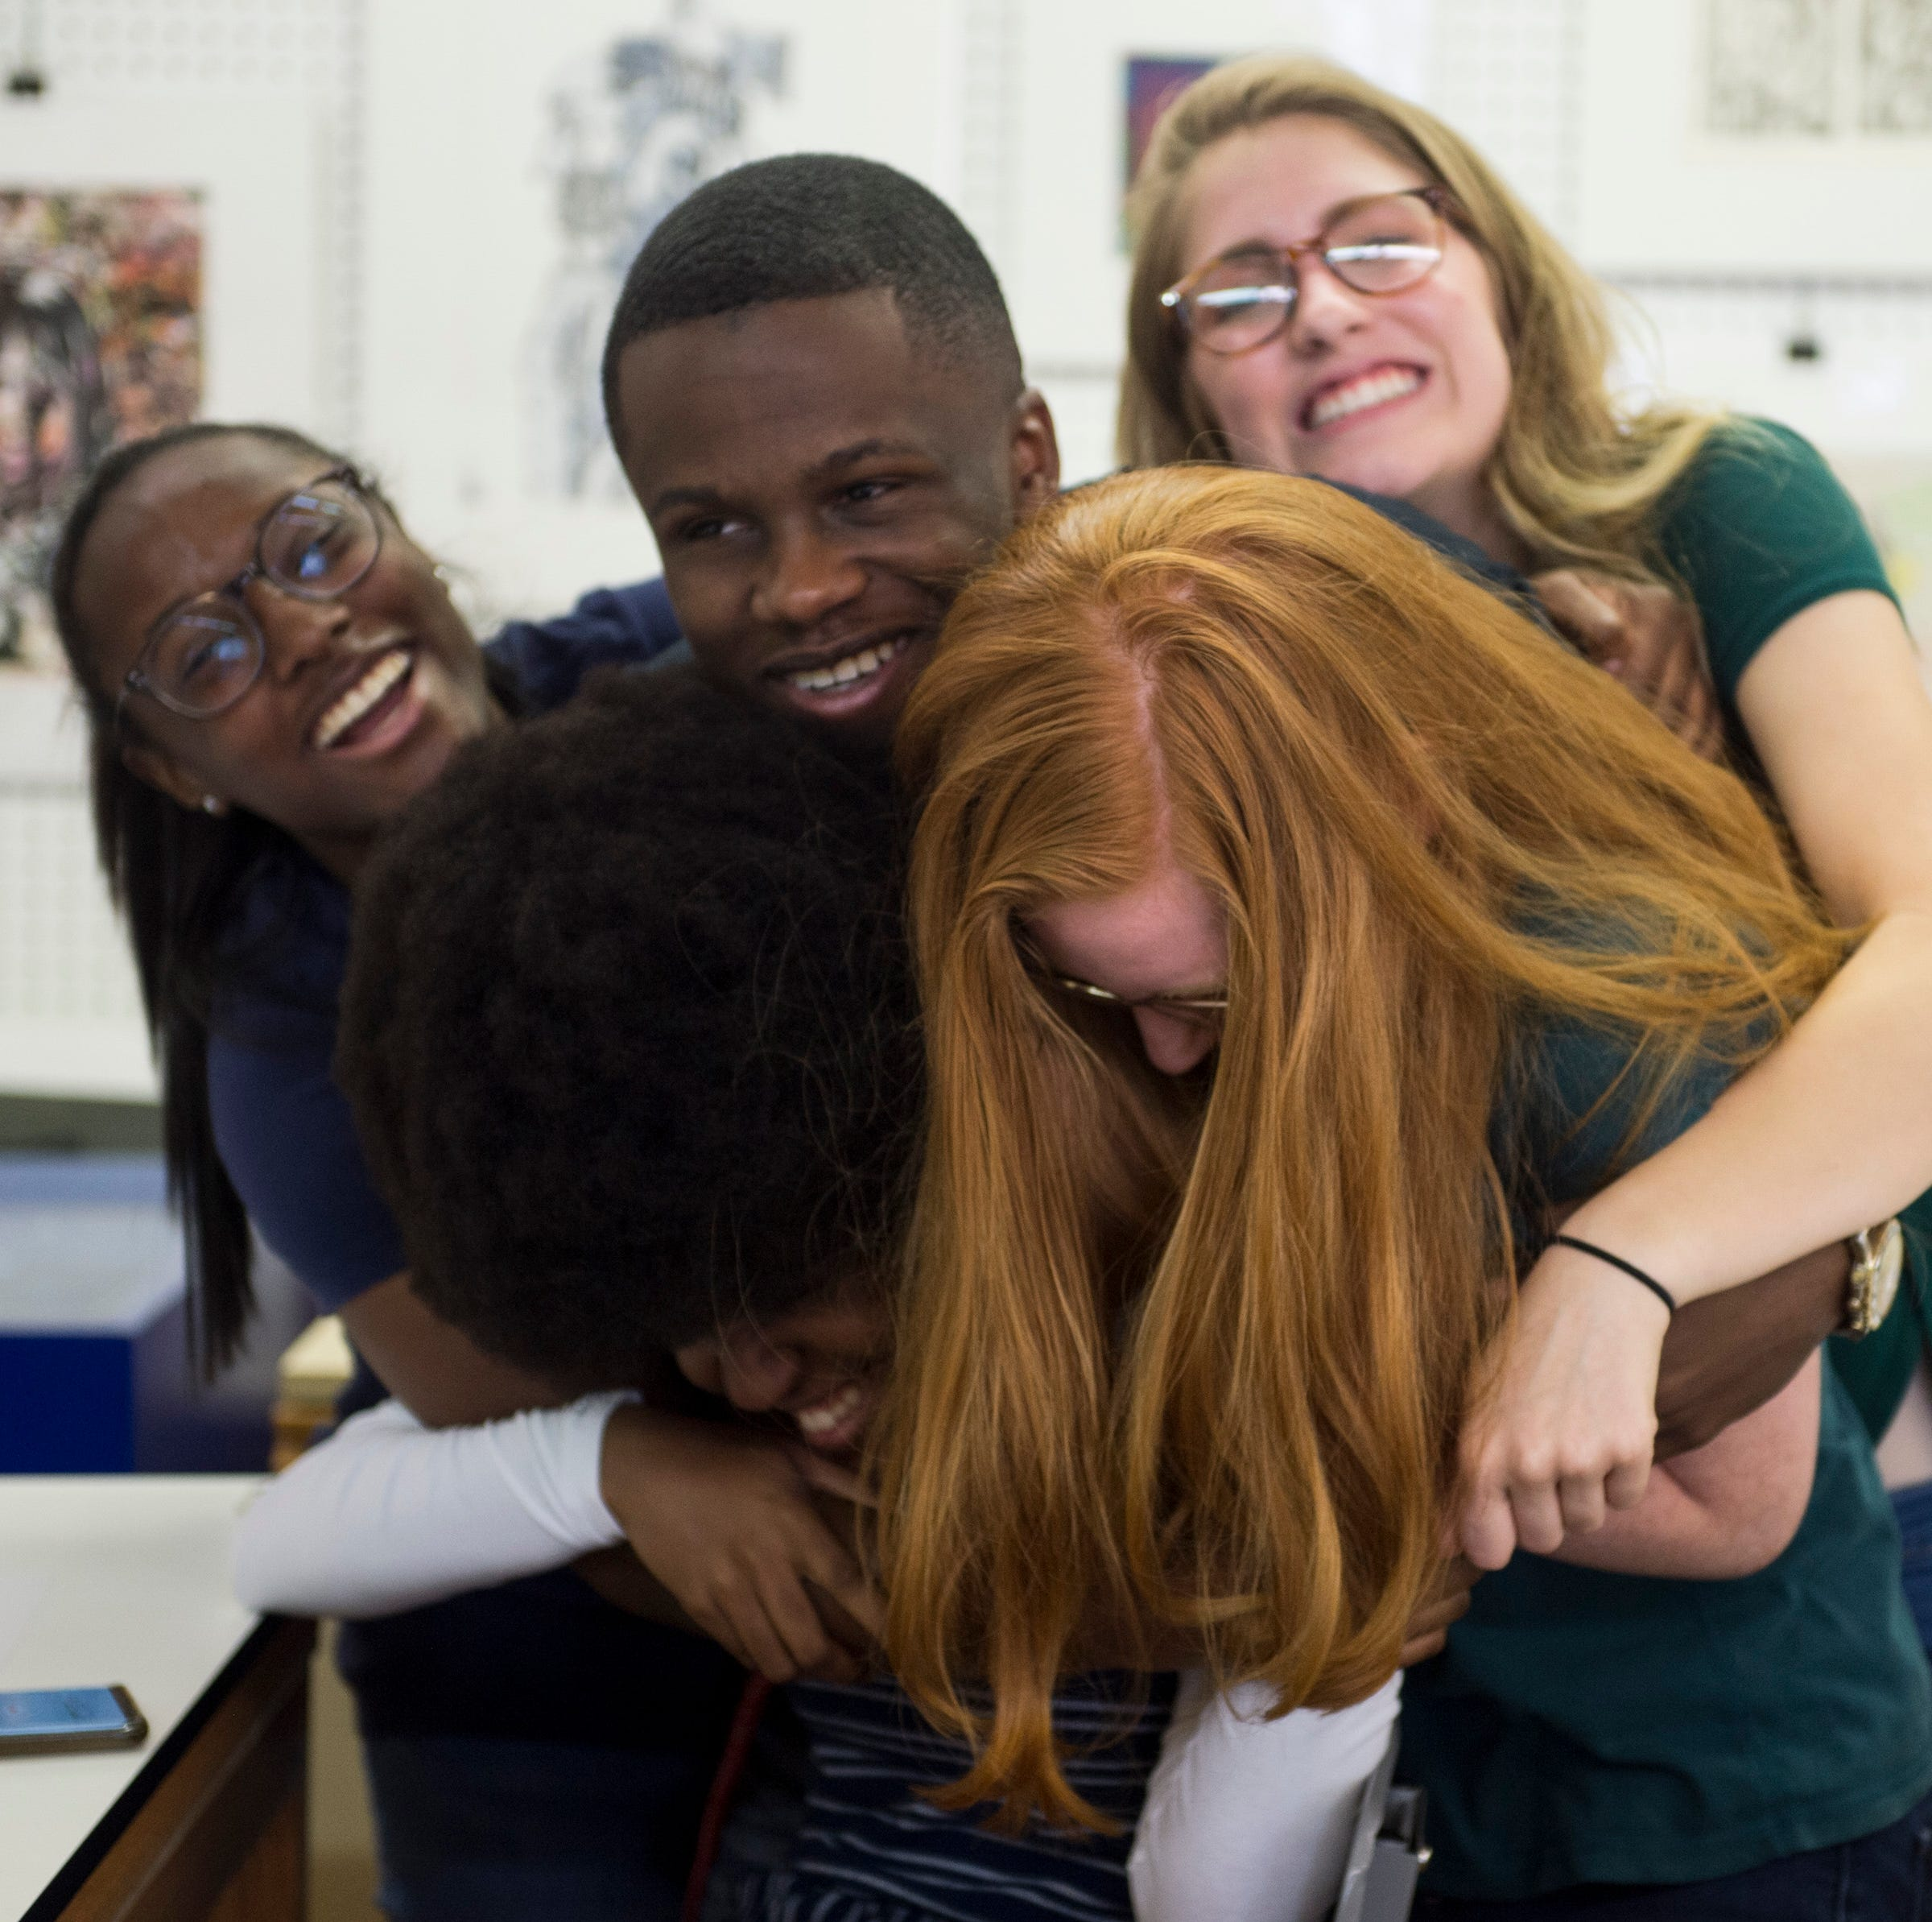 The fire that lit theirs: BTW art seniors reflect on their year at Hayneville Road